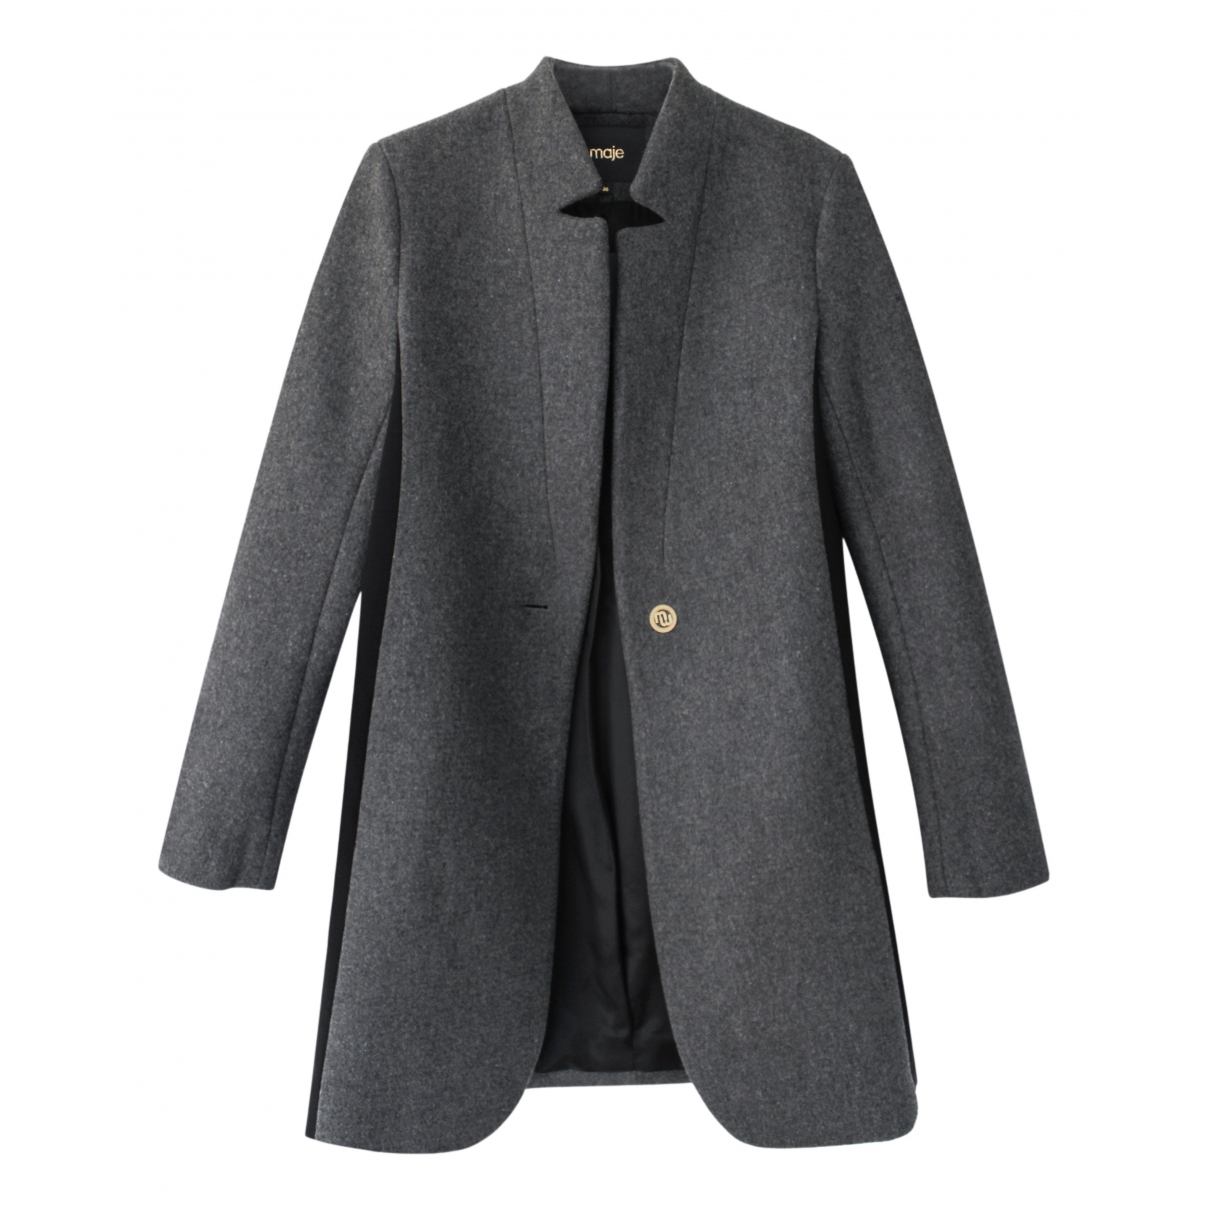 Maje N Anthracite Wool coat for Women 36 FR